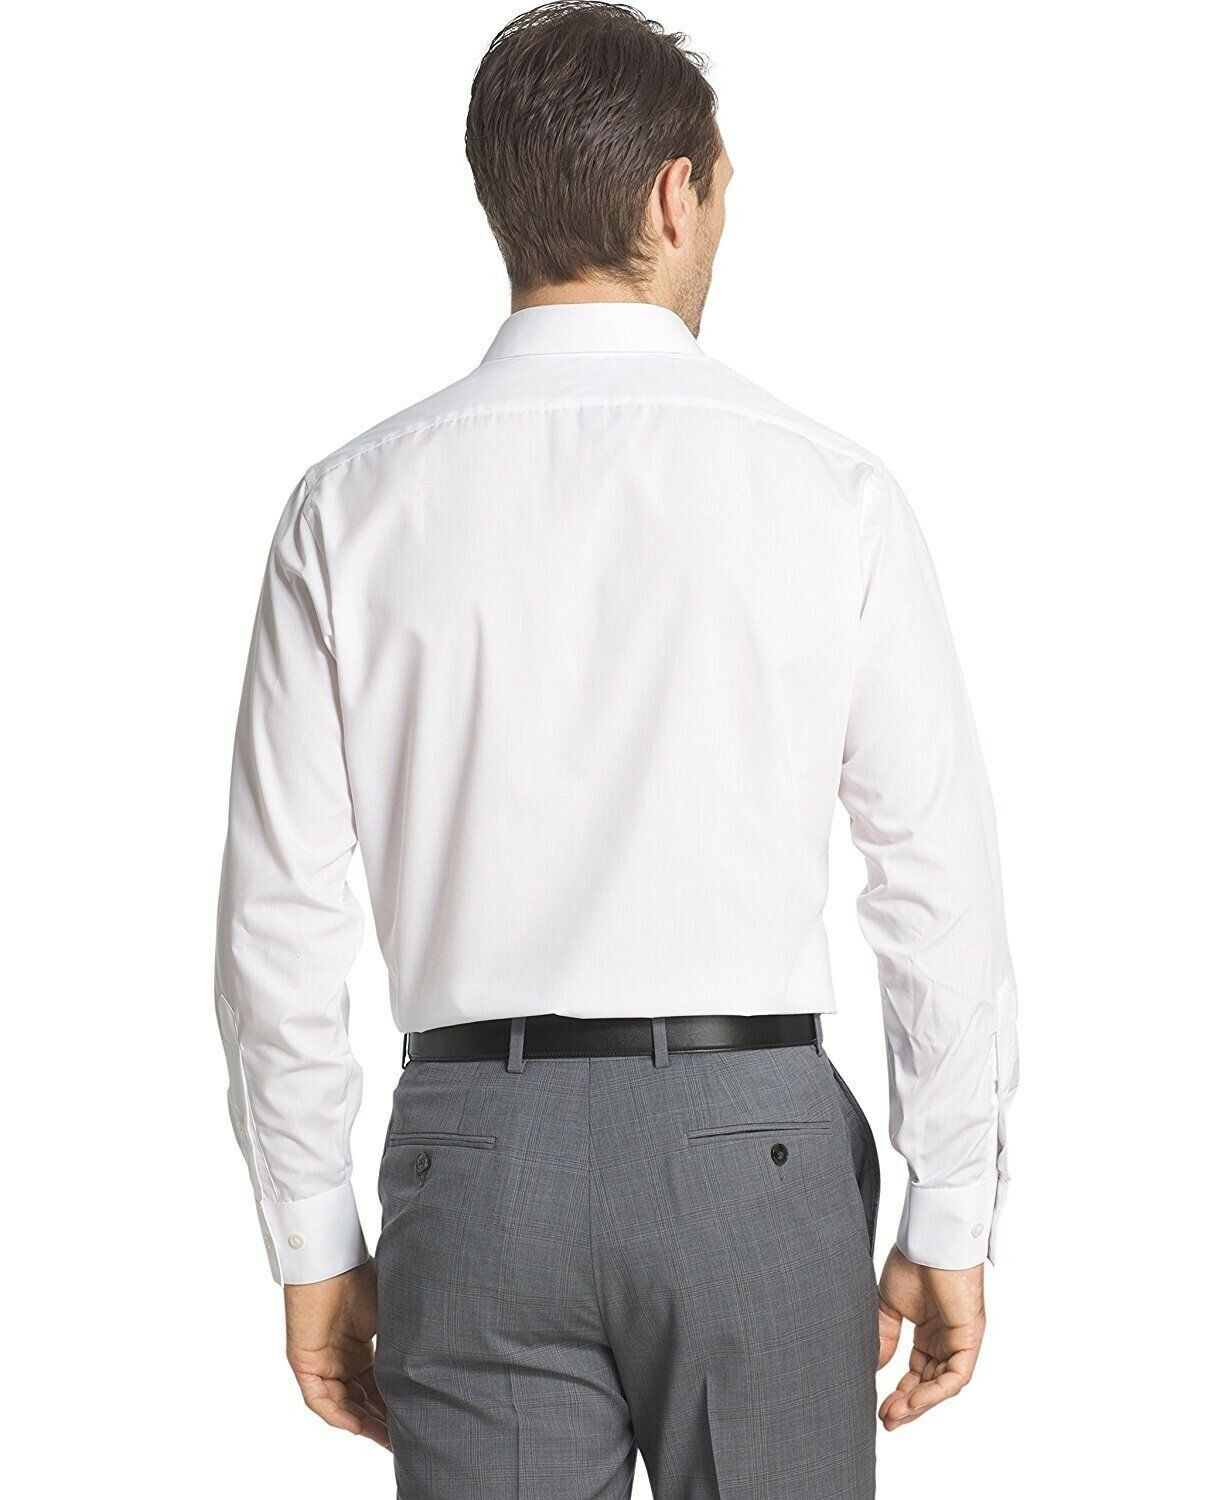 BERLIONI-ITALY-MEN-039-S-PRIME-FRENCH-CONVERTIBLE-CUFF-SOLID-DRESS-SHIRT-WHITE thumbnail 20